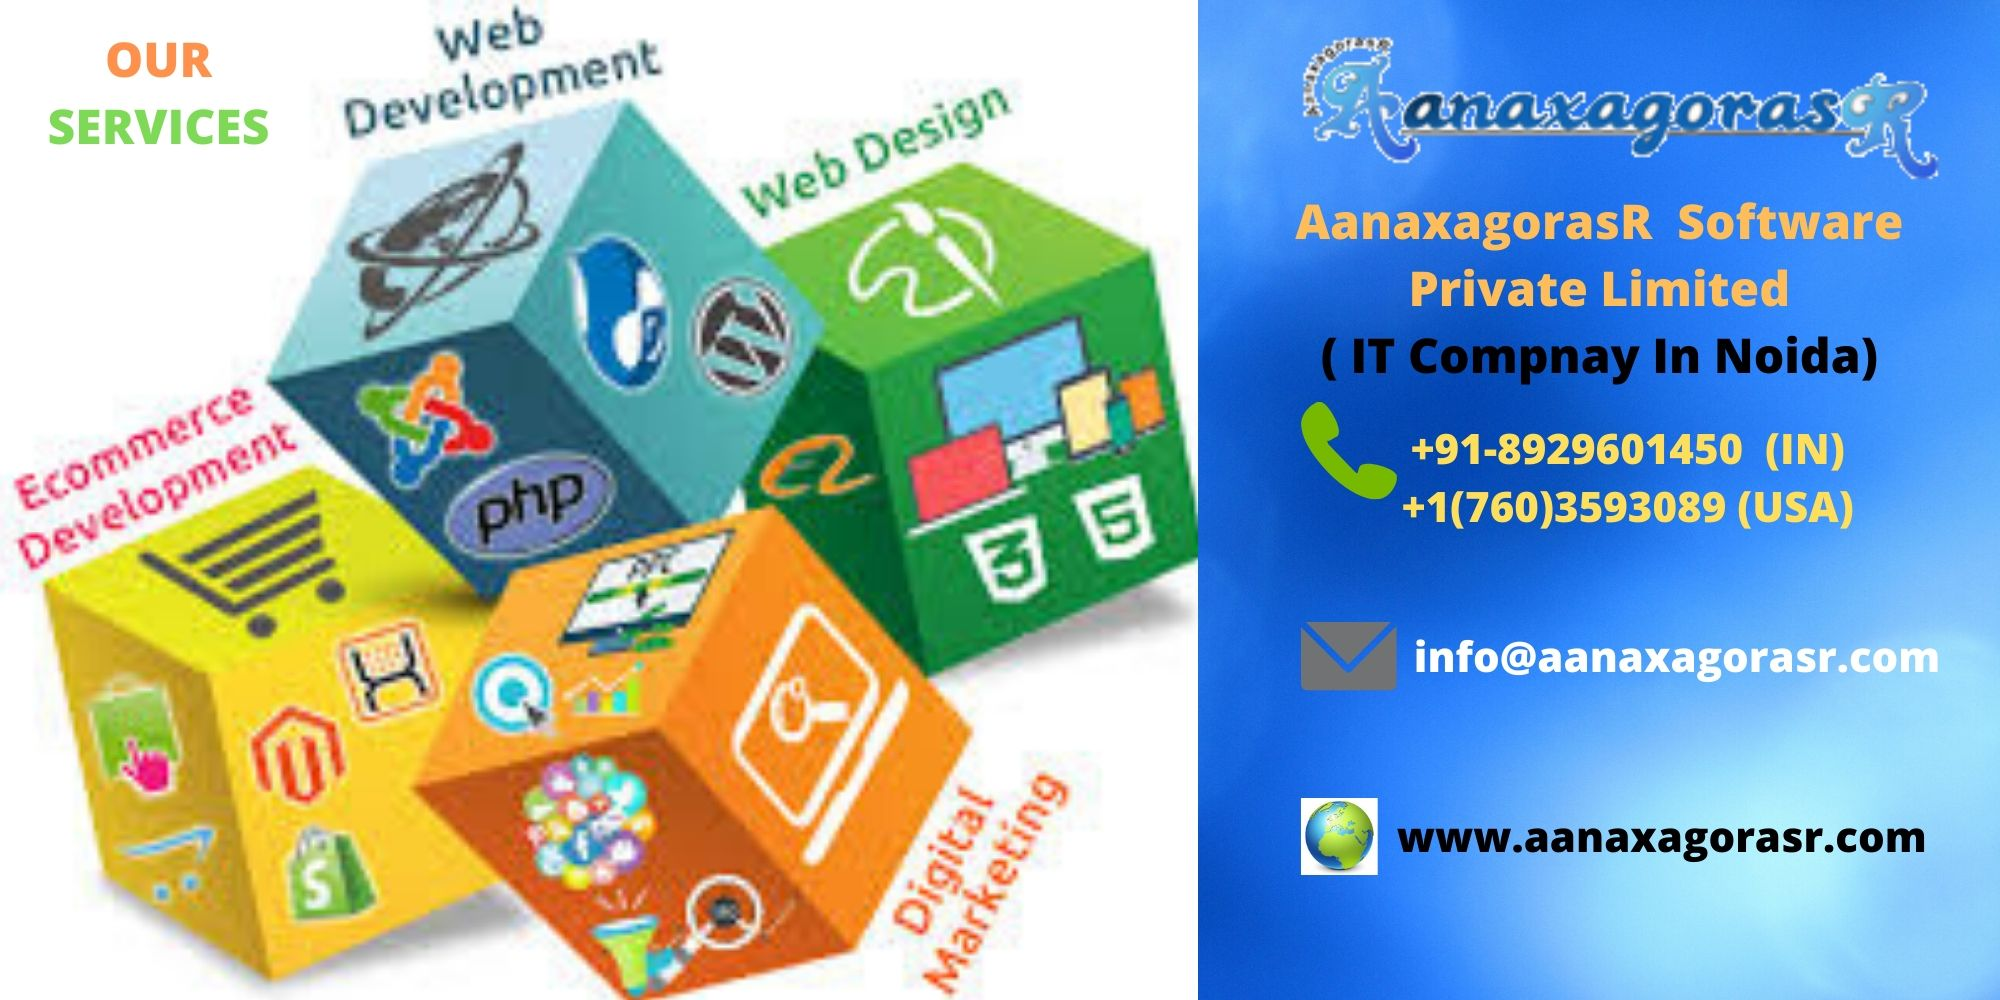 Top Information Technology (IT) Companies In Noida